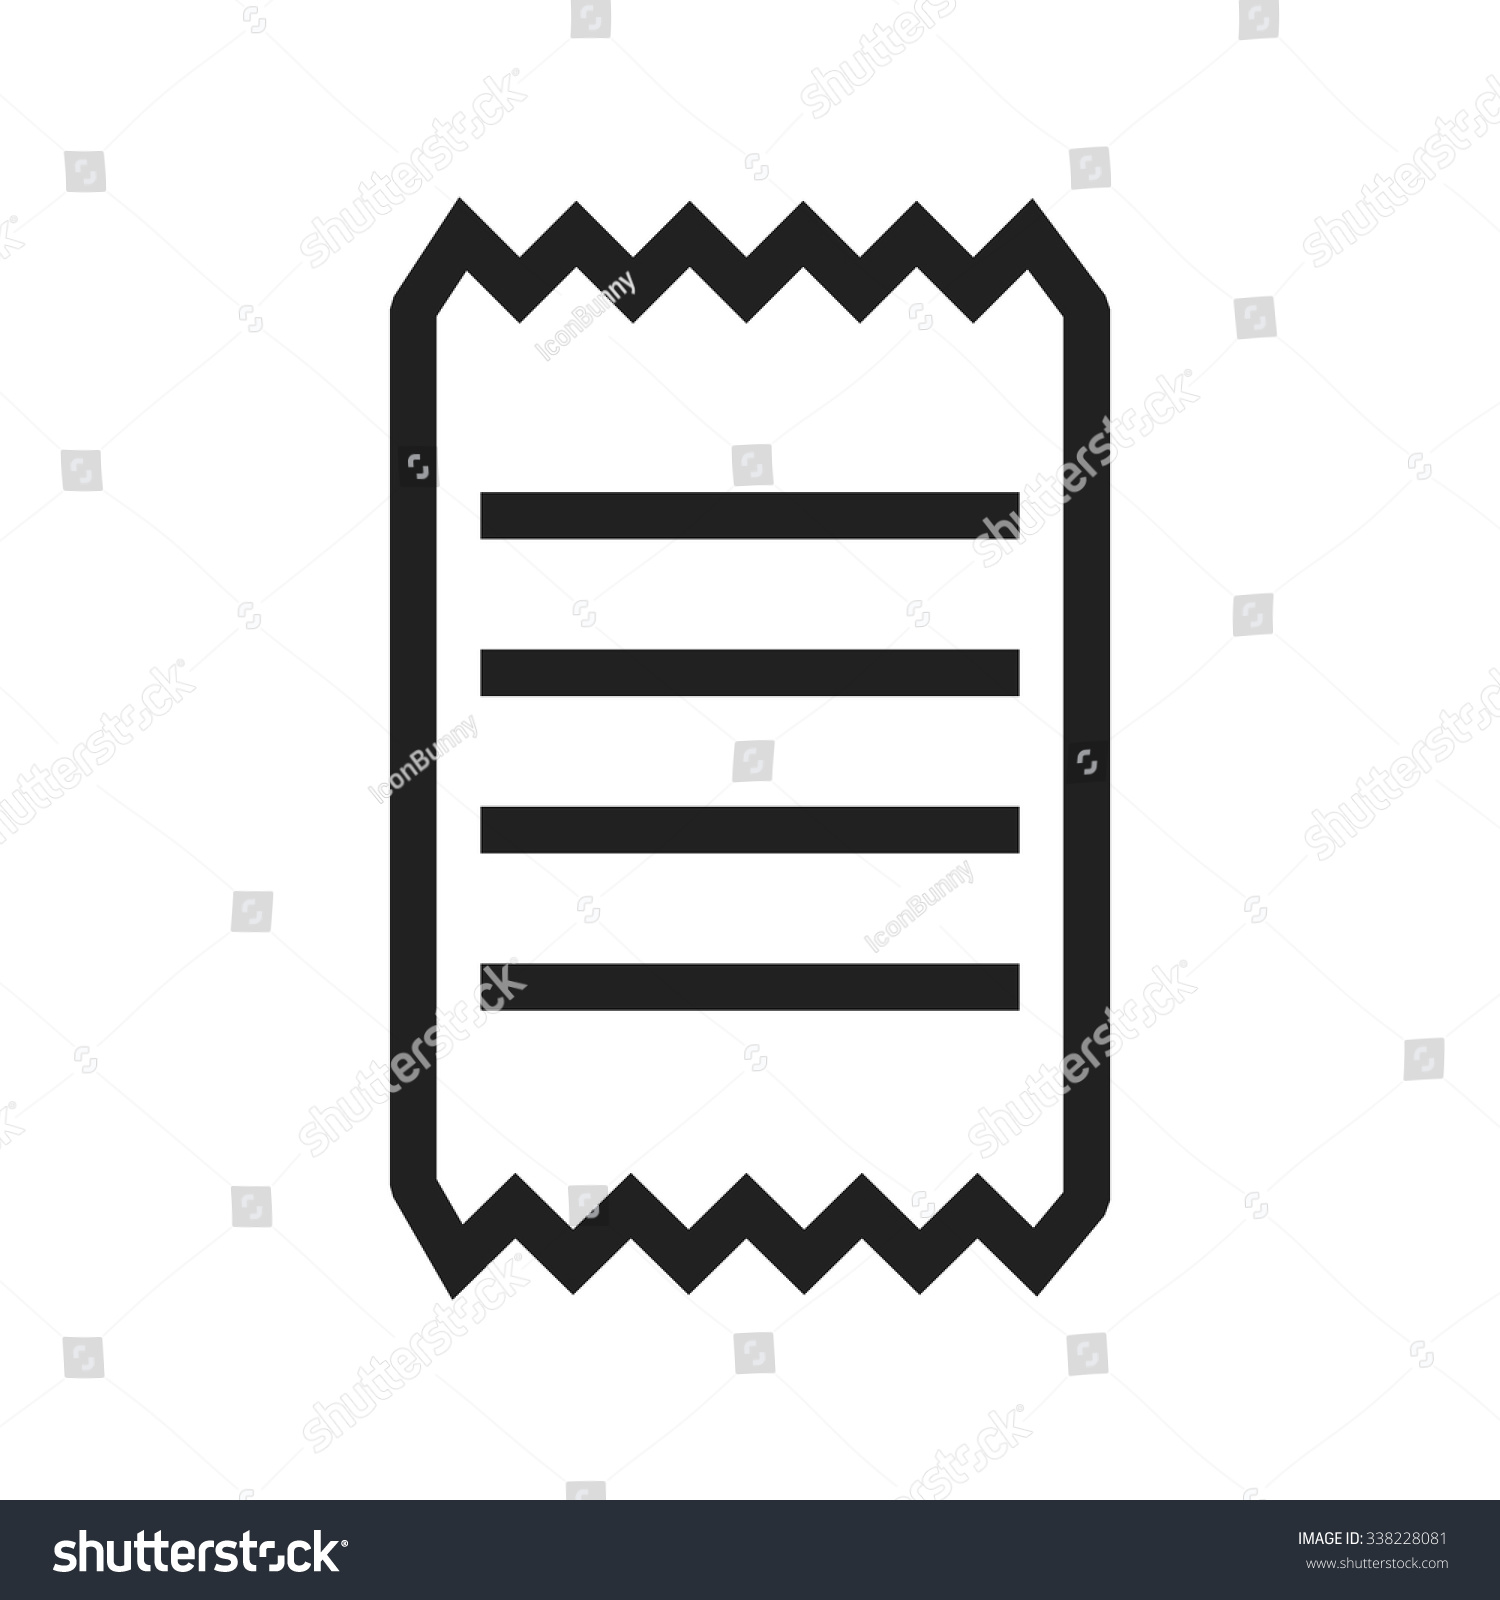 Sample Of Receipt Book Excel Receipt Invoice Bill Icon Vector Image Stock Vector   Invoice Pricing On New Cars with Ebay Motors Payment Invoice Pdf Receipt Invoice Bill Icon Vector Image Can Also Be Used For Material  Design Alamo Receipt Pdf